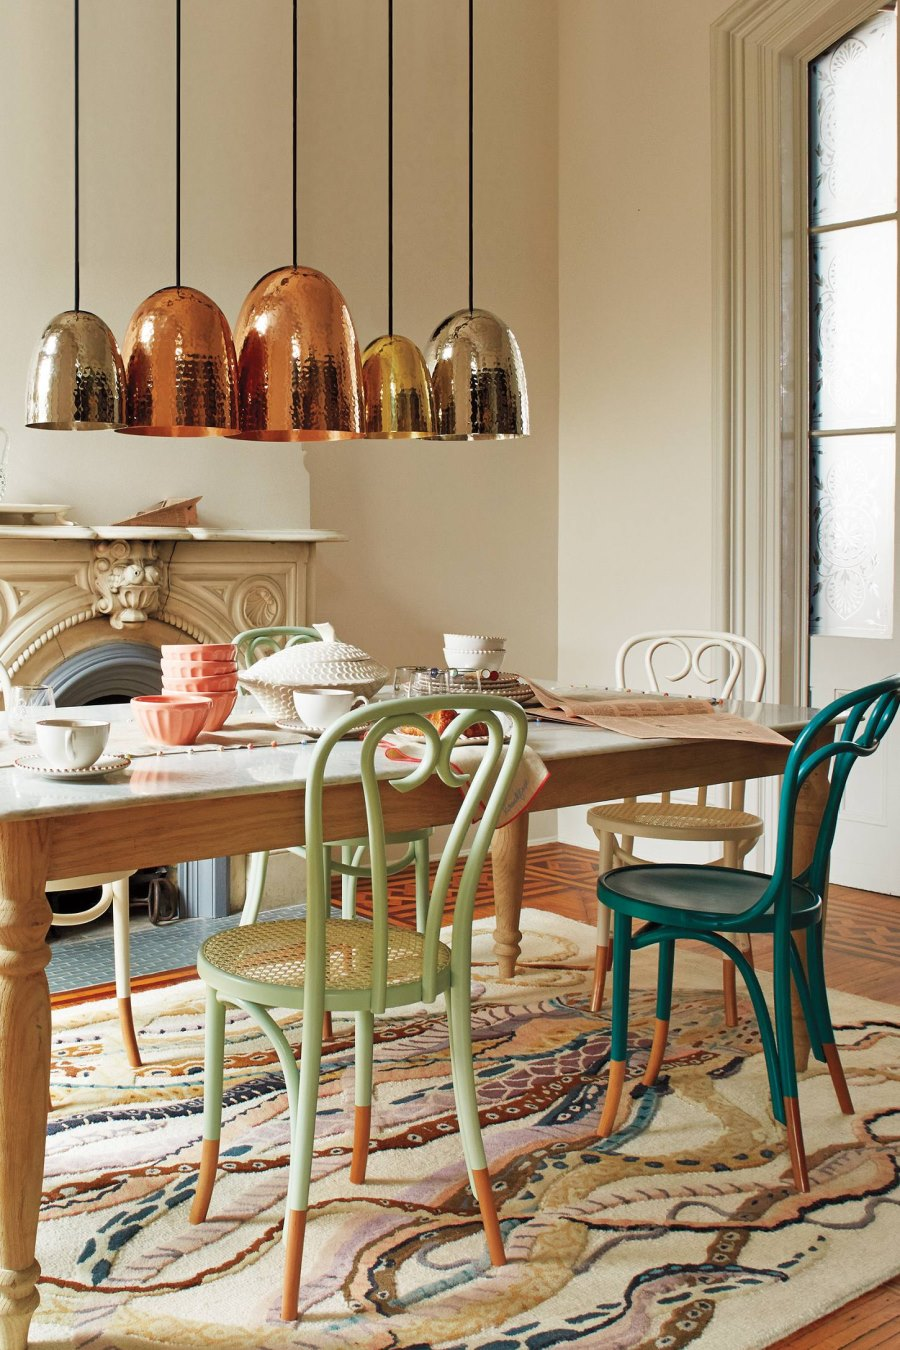 Marble and wood dining table from Anthropologie